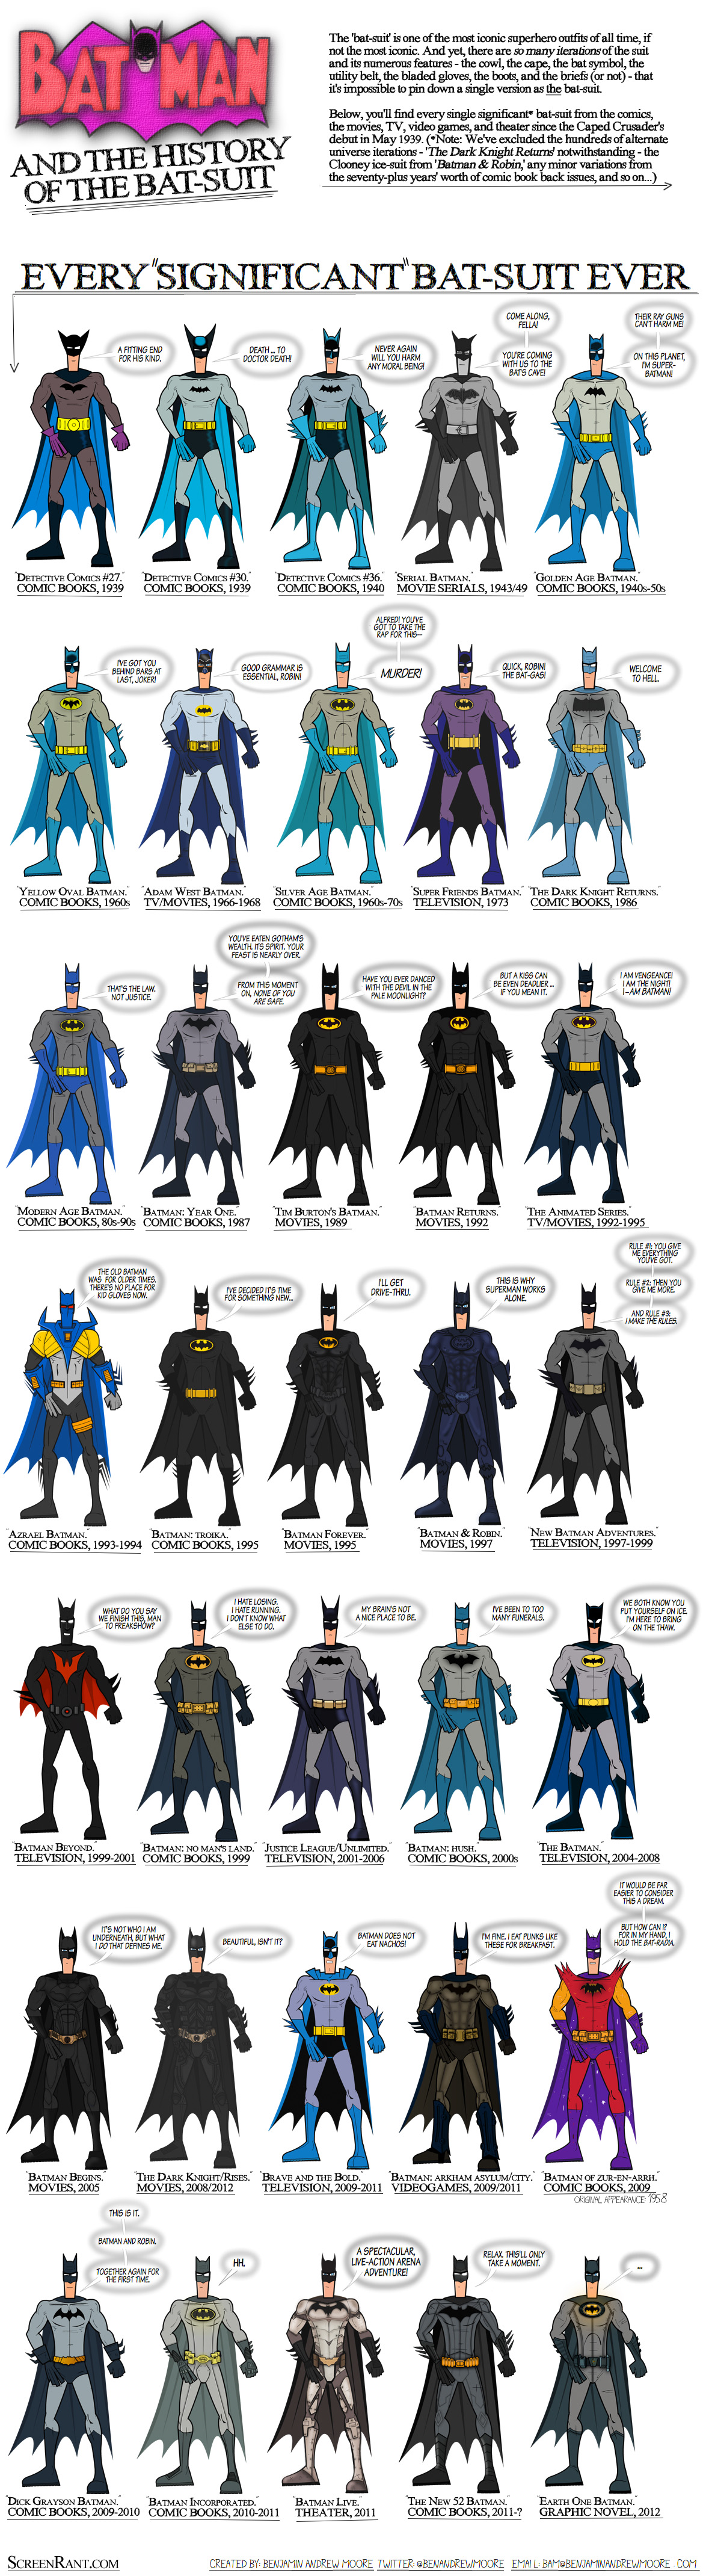 Batman vs Superman Scenes and Batsuit Updates - Batman ...